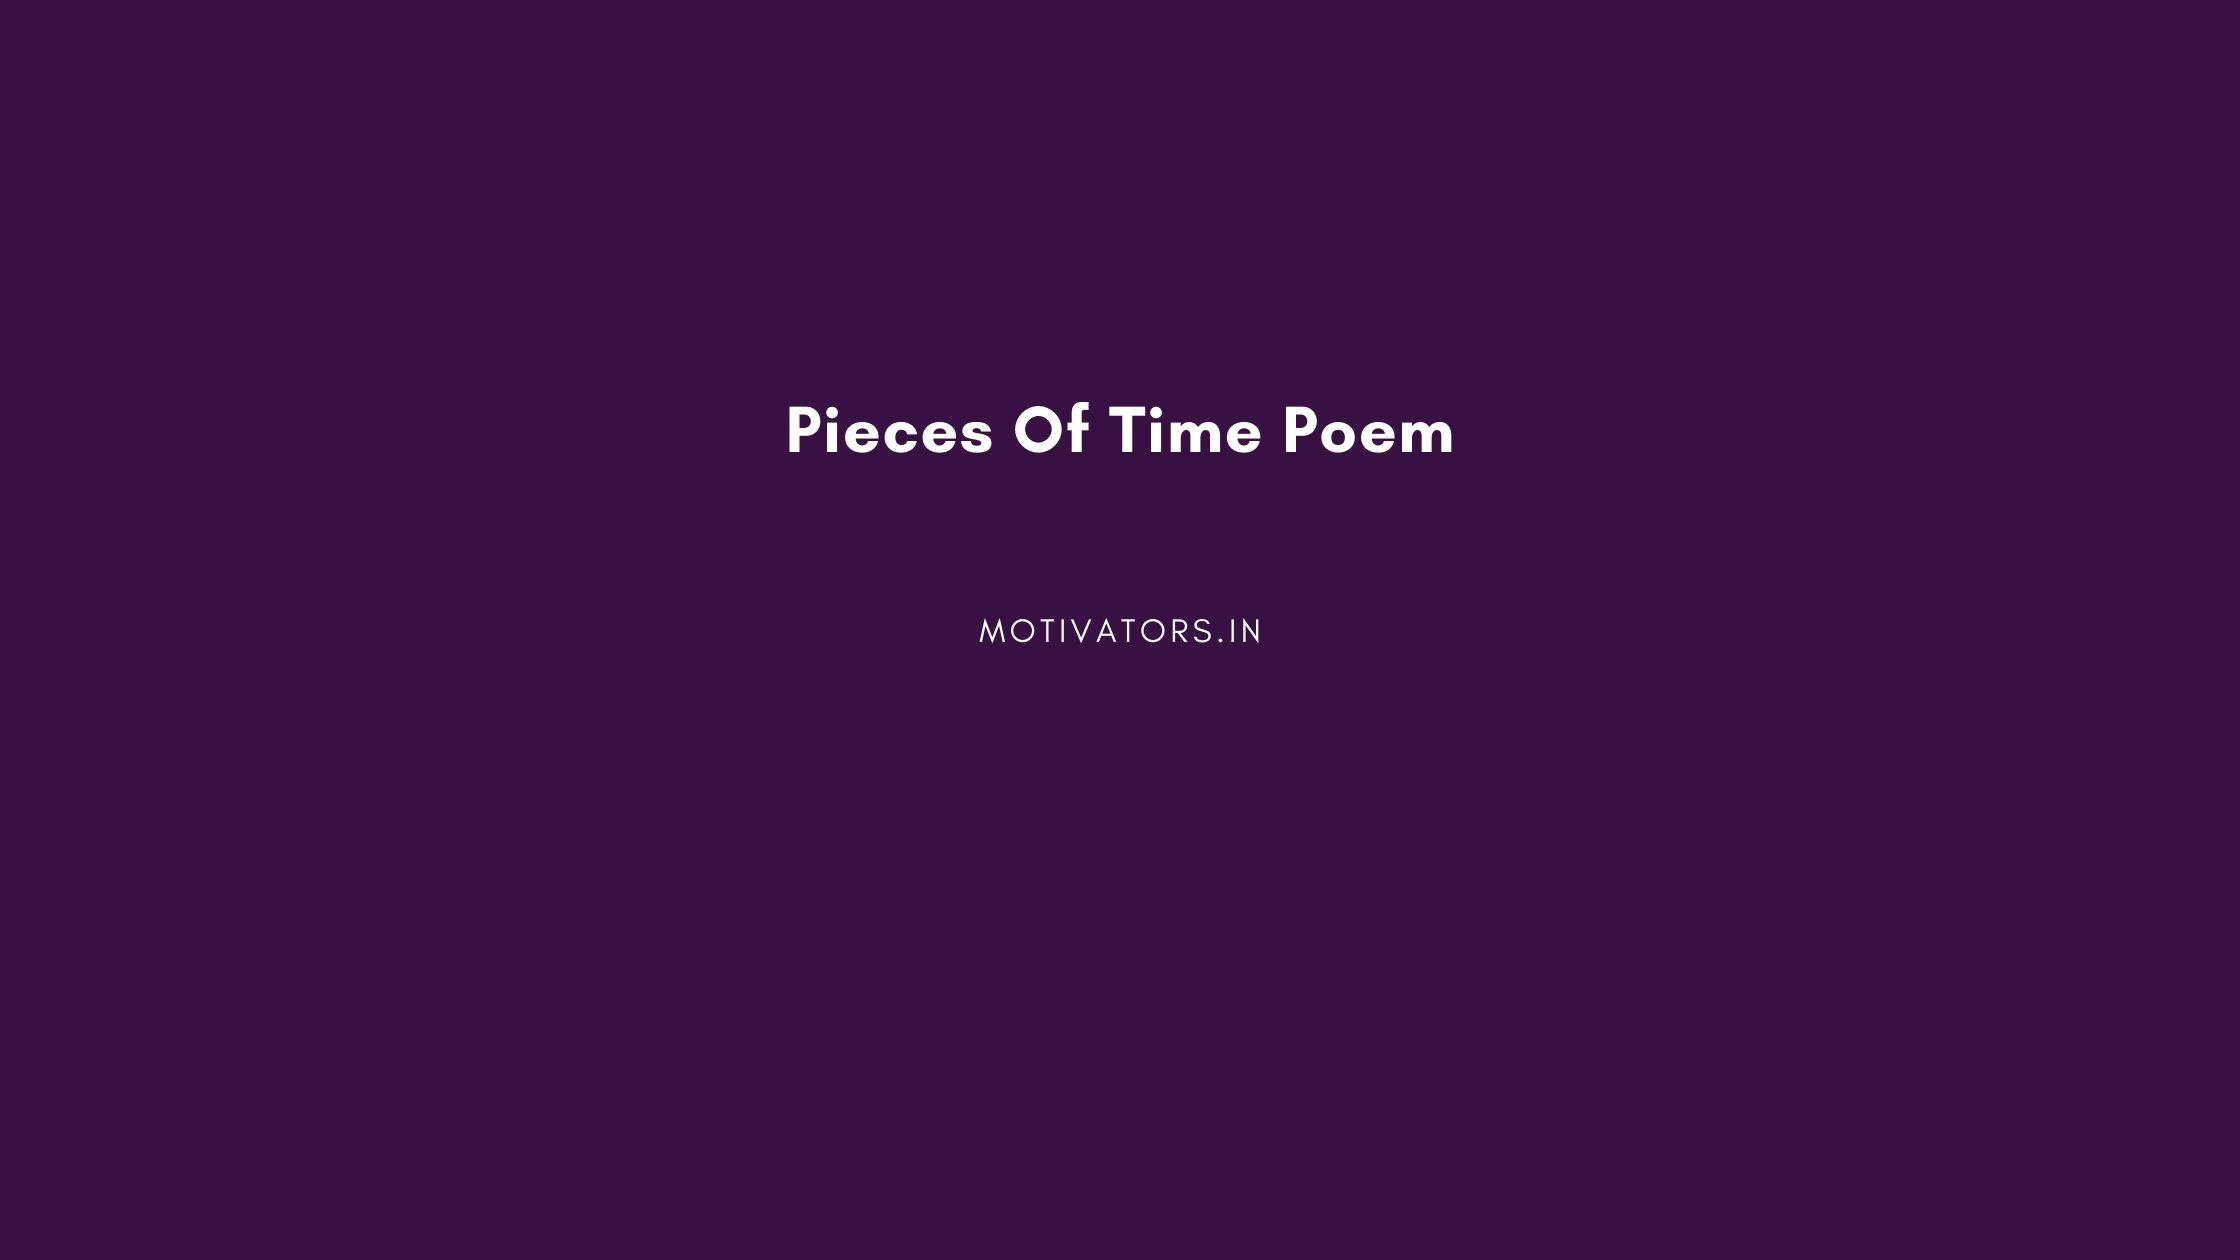 Pieces Of Time Poem